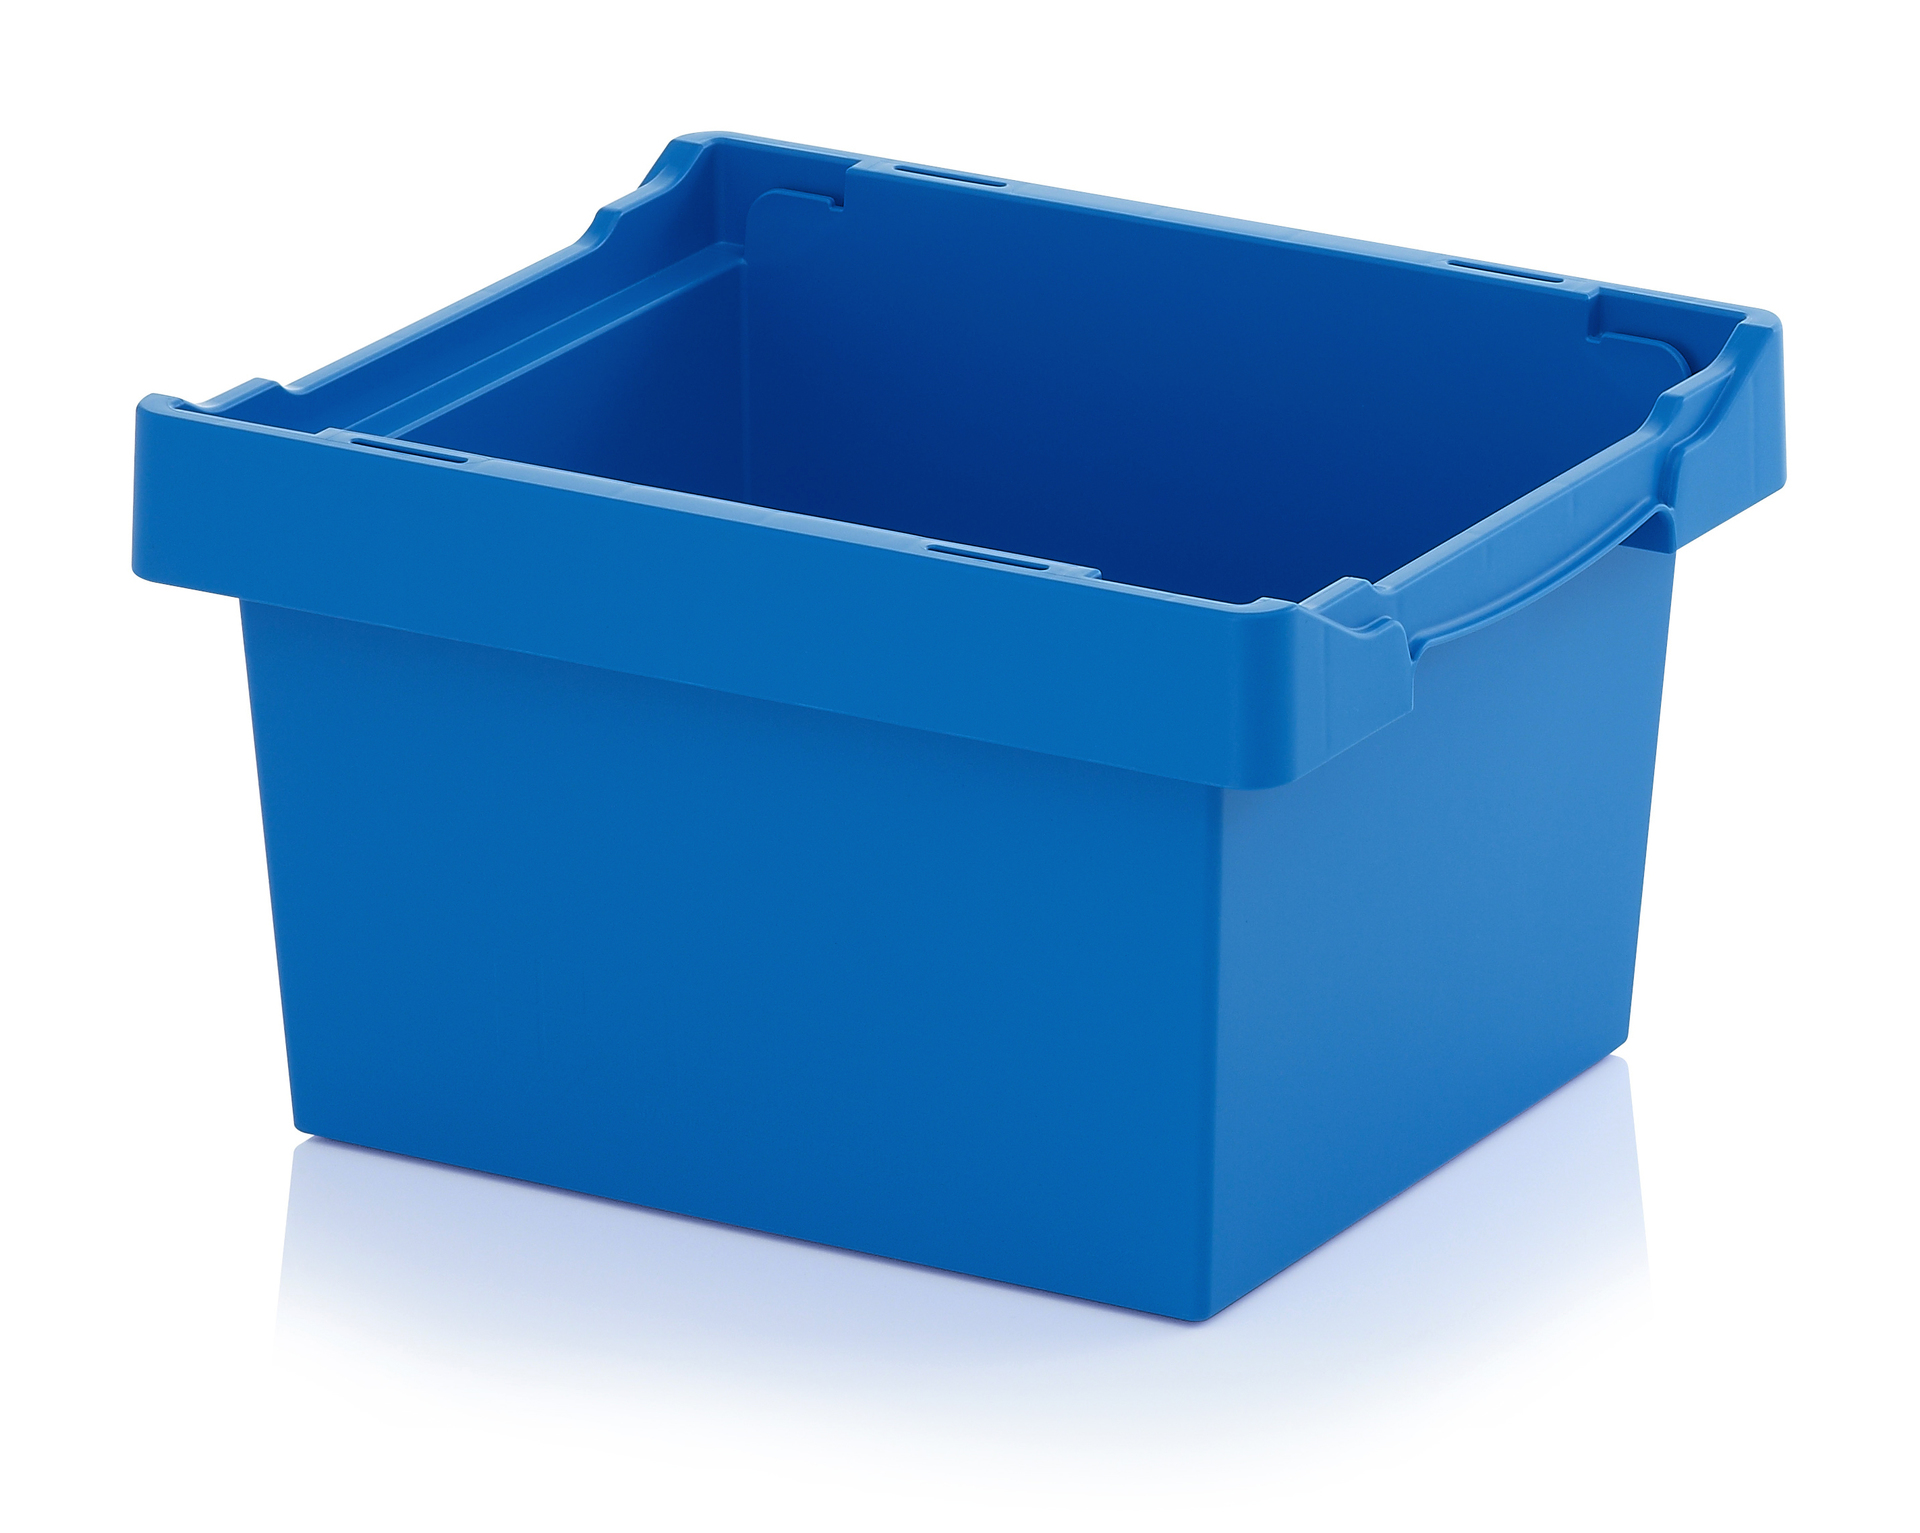 RC4220 Reusable Containers - Plastic Mouldings Northern